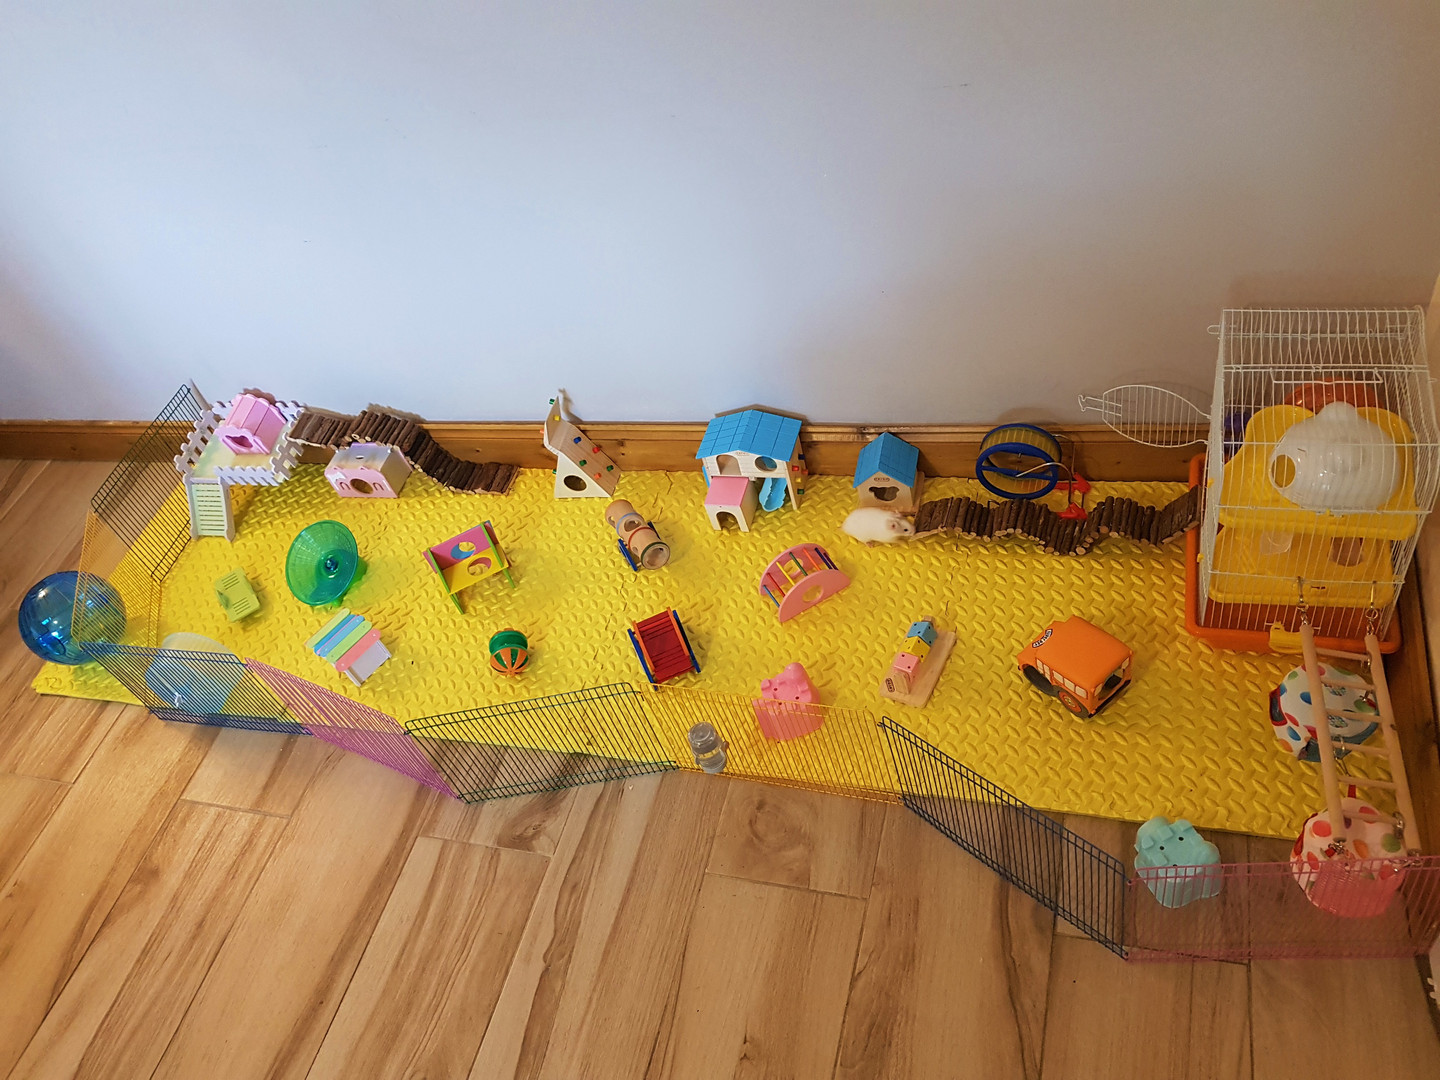 Sample of some of the hamster houses and play set